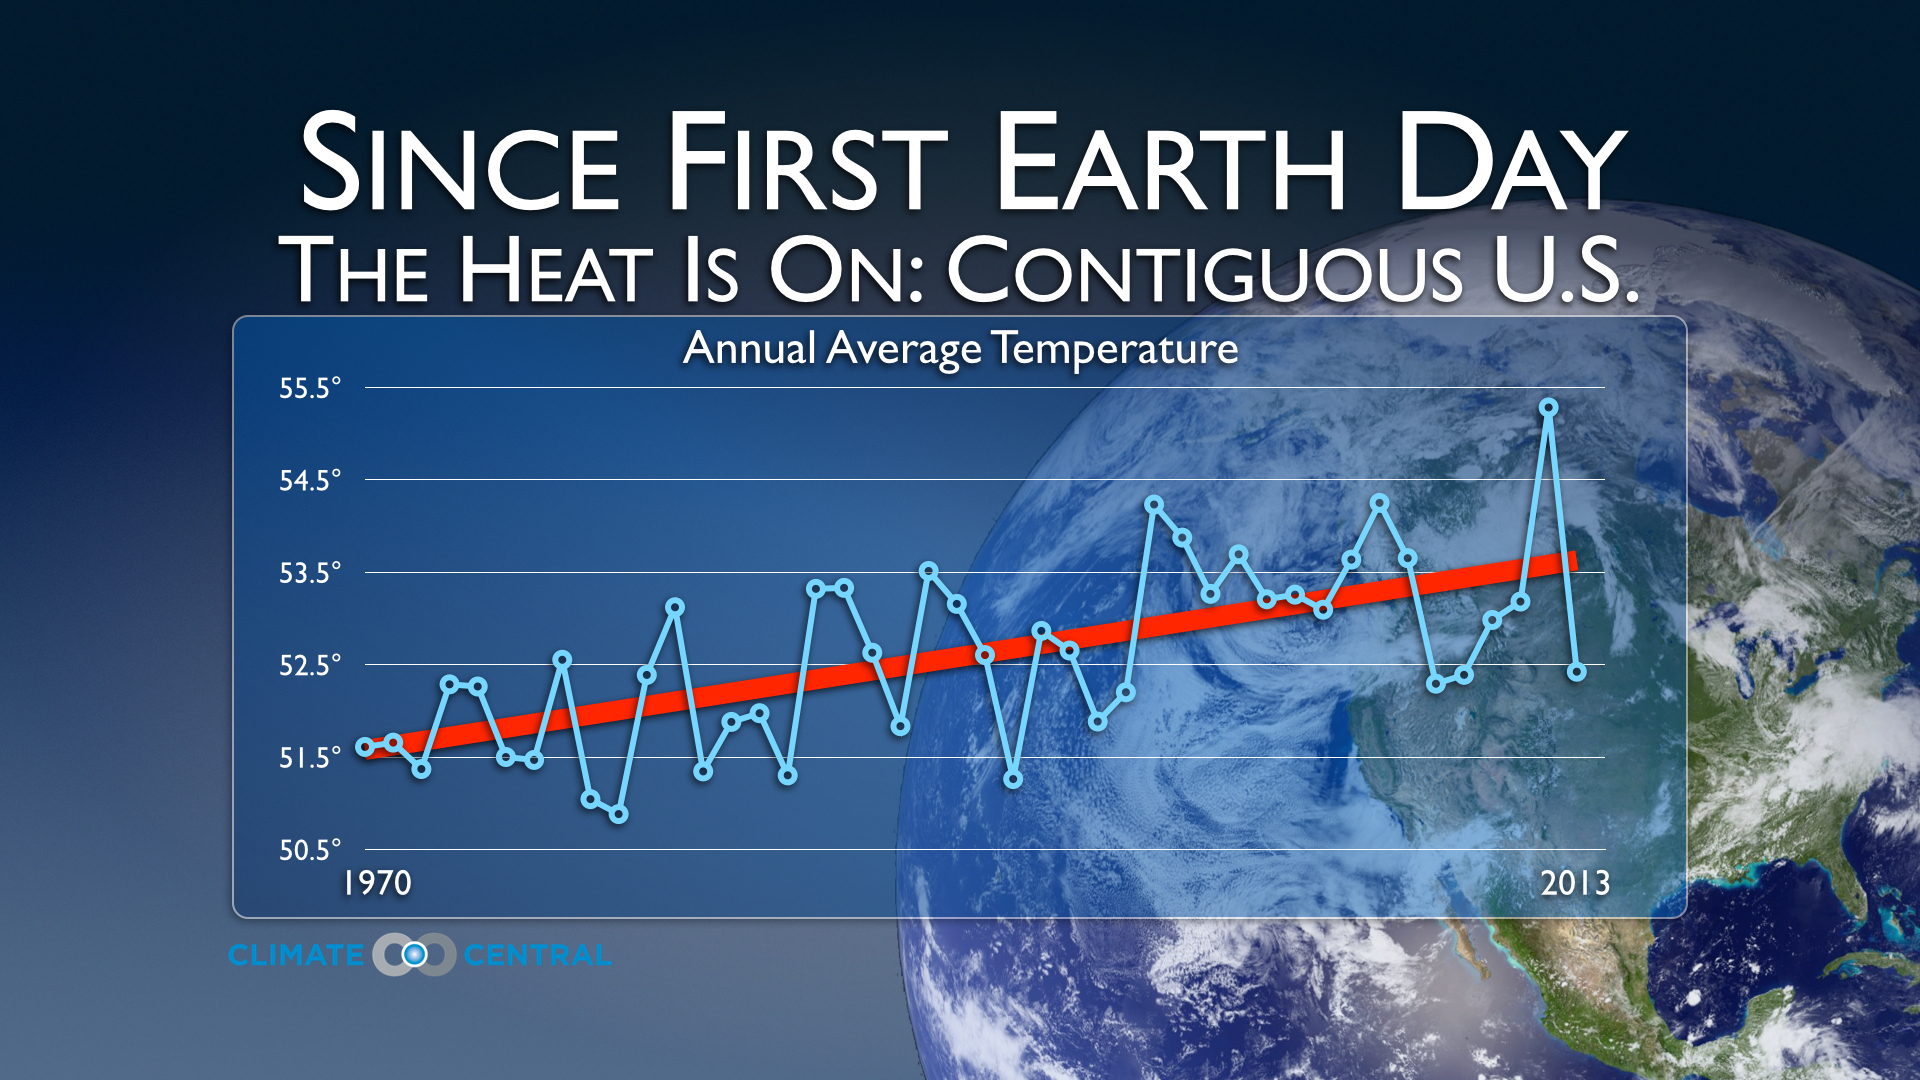 Temps Marching Upward Since First Earth Day